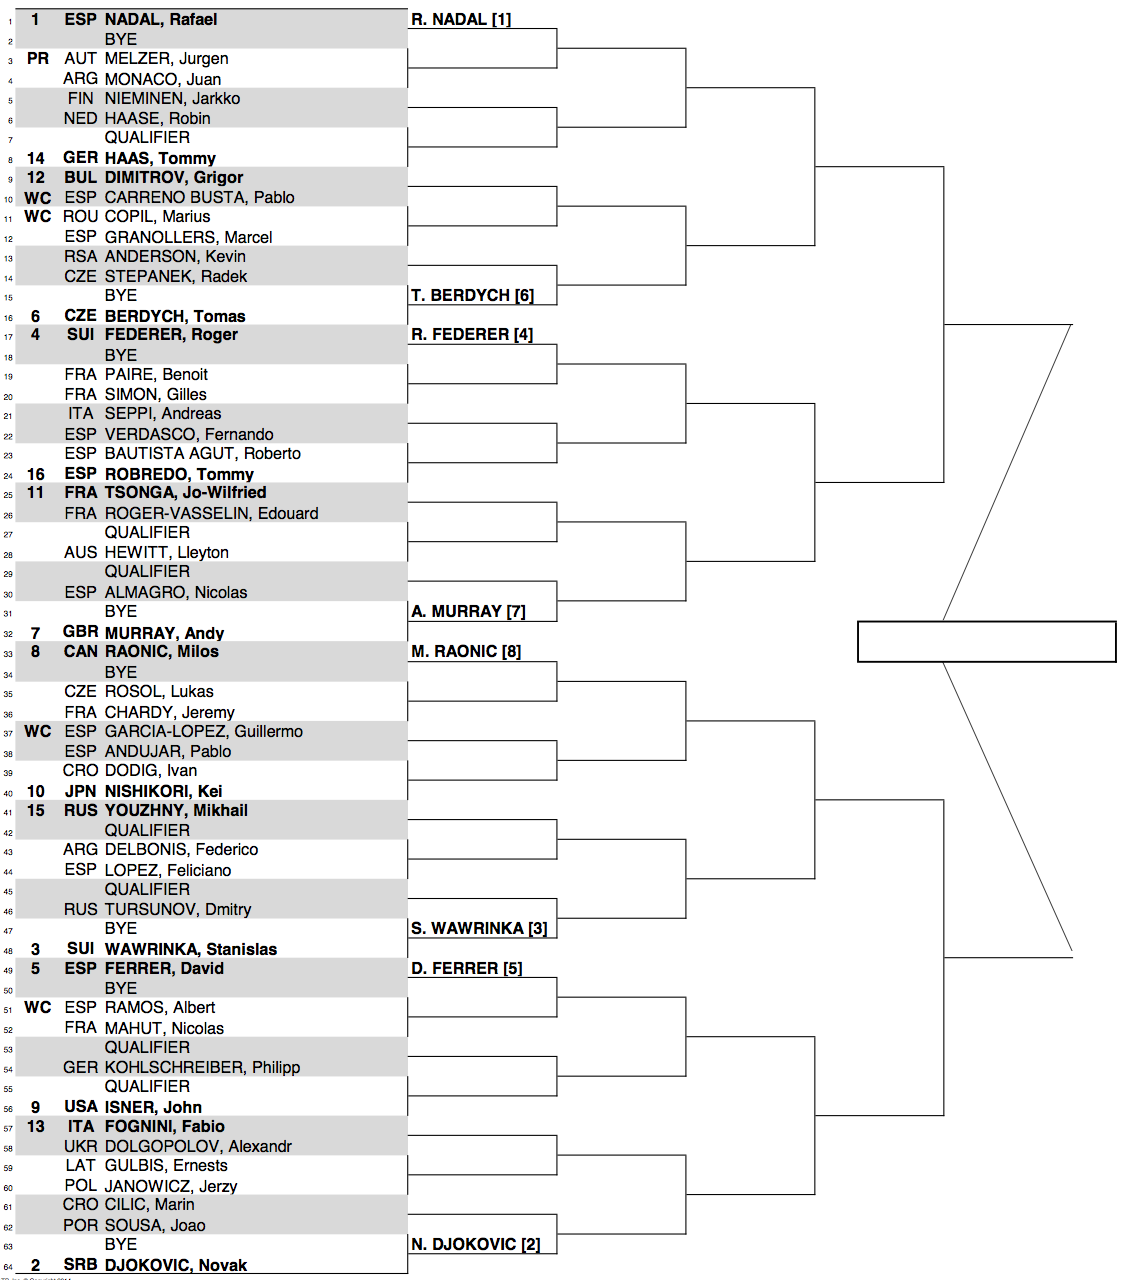 Madrid 2014 Draw